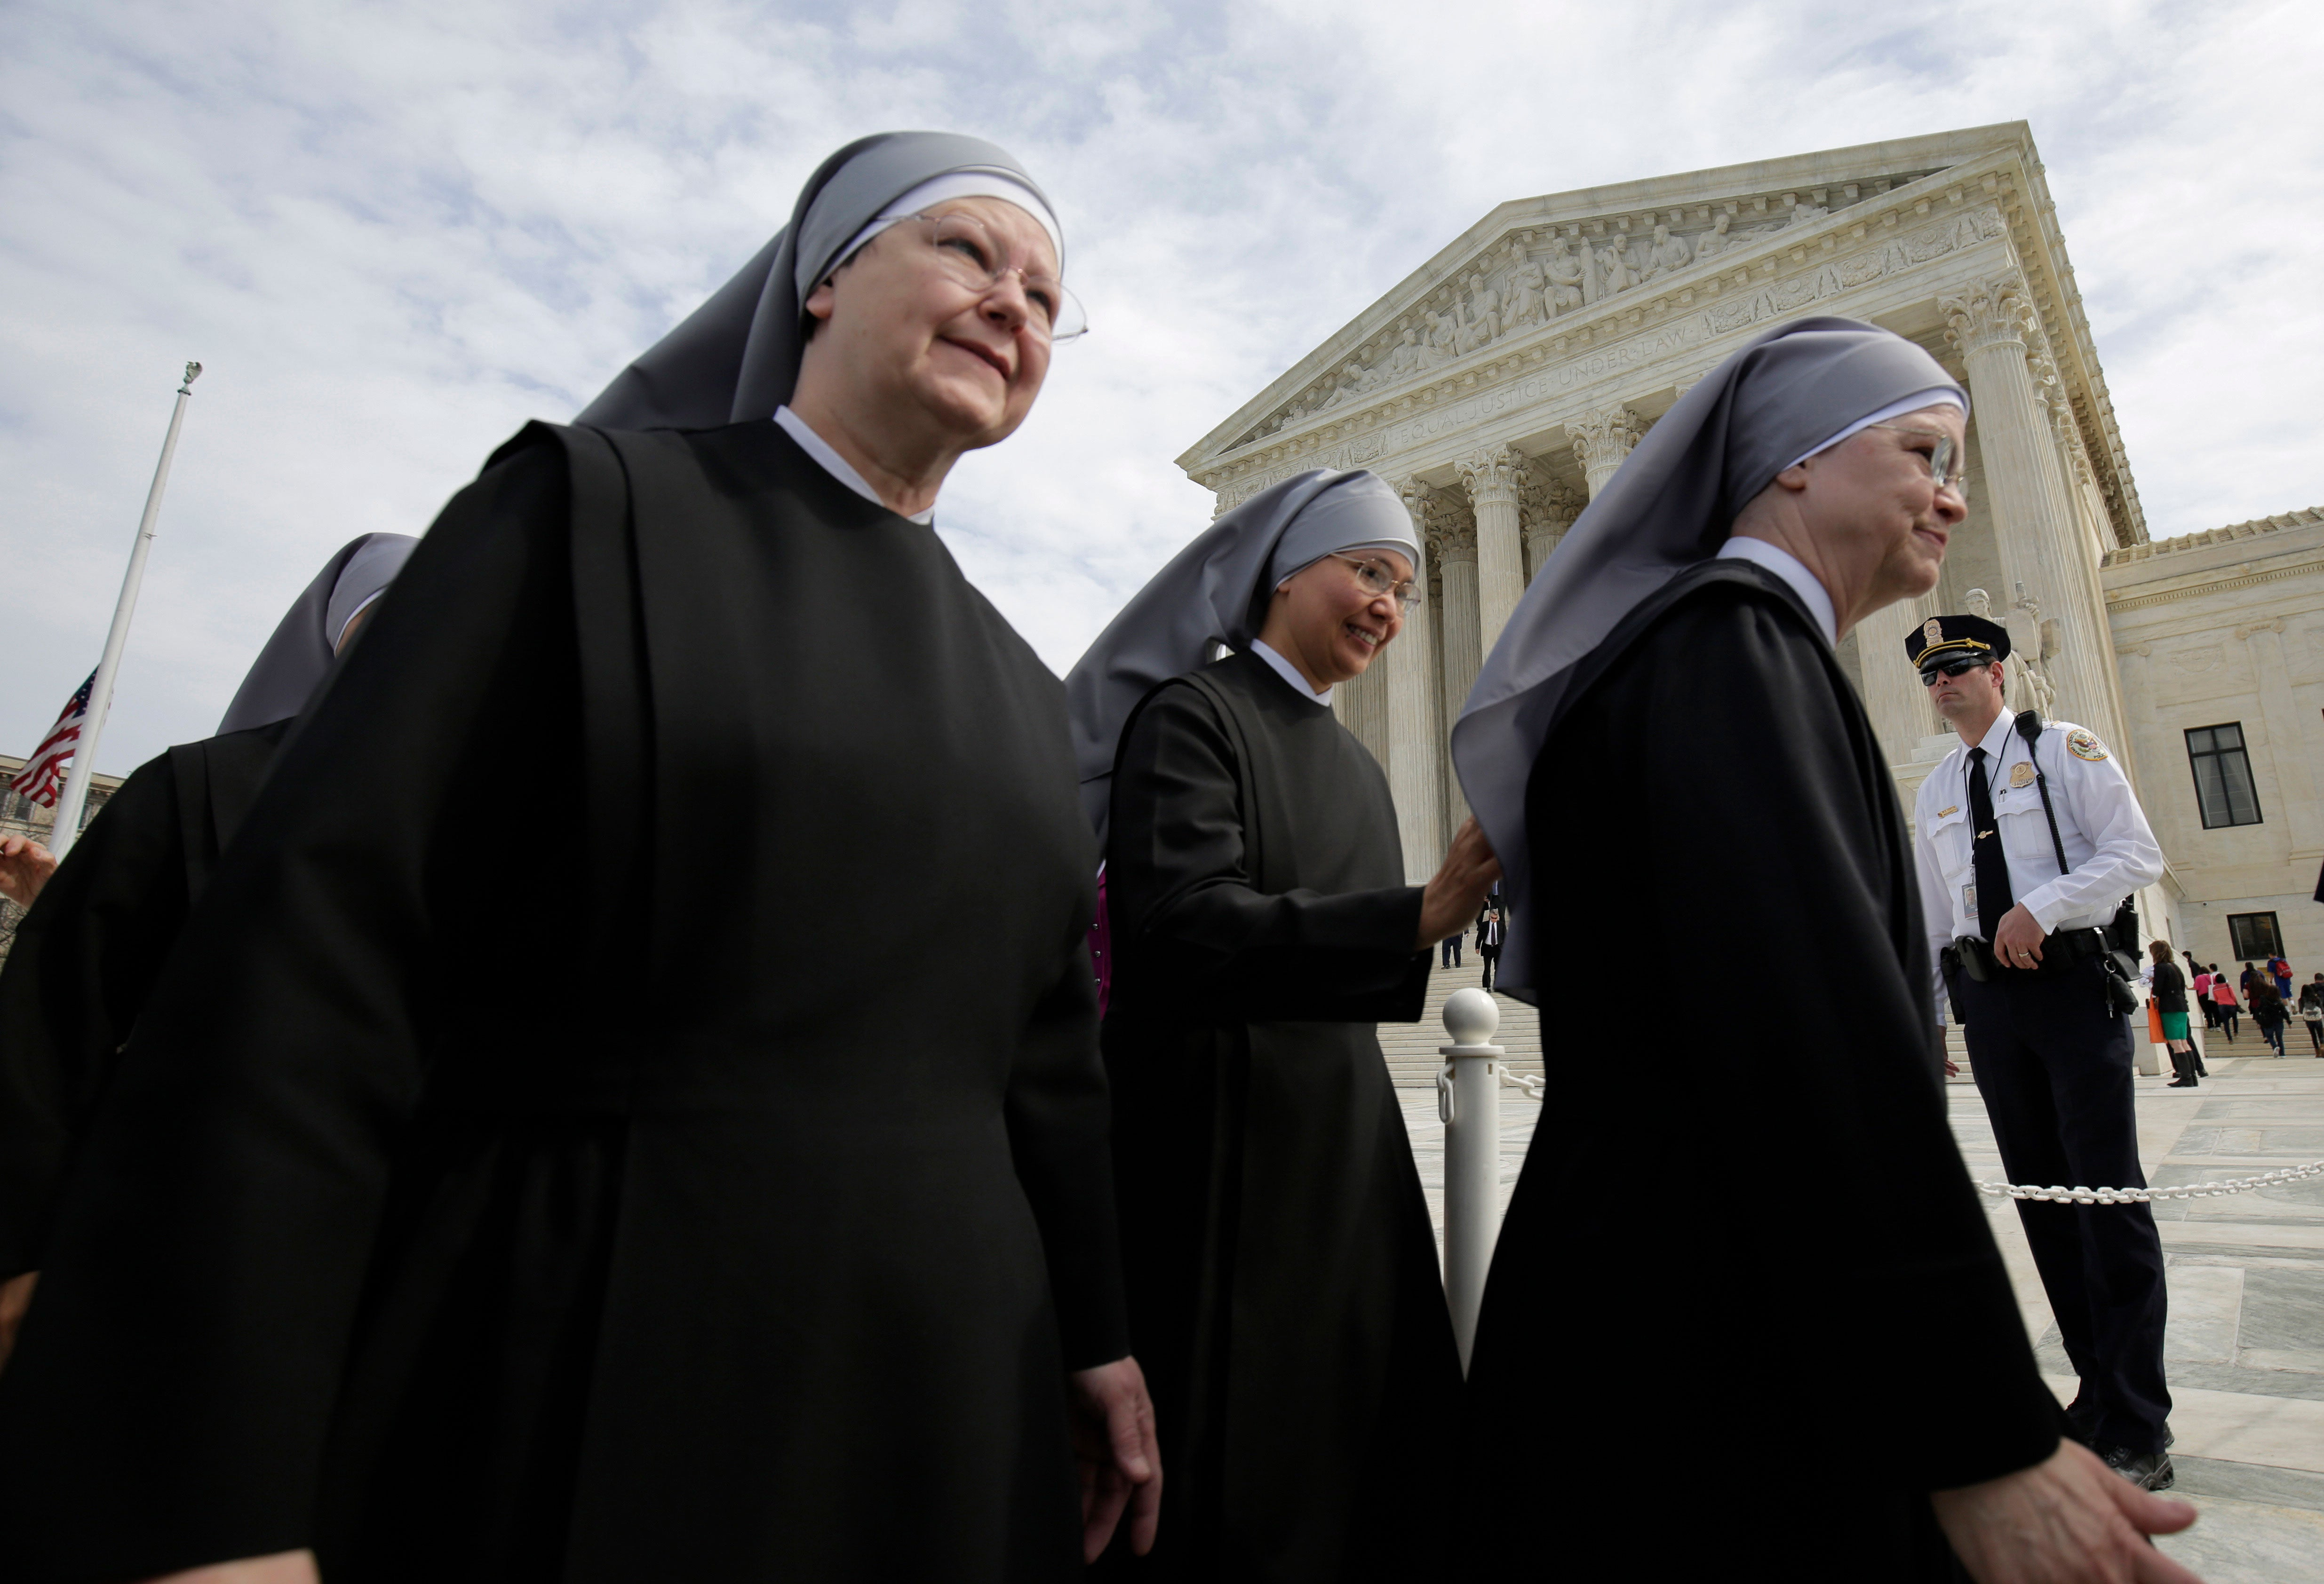 Nuns with Little Sisters of the Poor walk outside the ground of the Supreme Court after arguments were heard in Zubik v. Burwell, March 23, 2016. (Photo: Joshua Roberts/Reuters/Newscom)